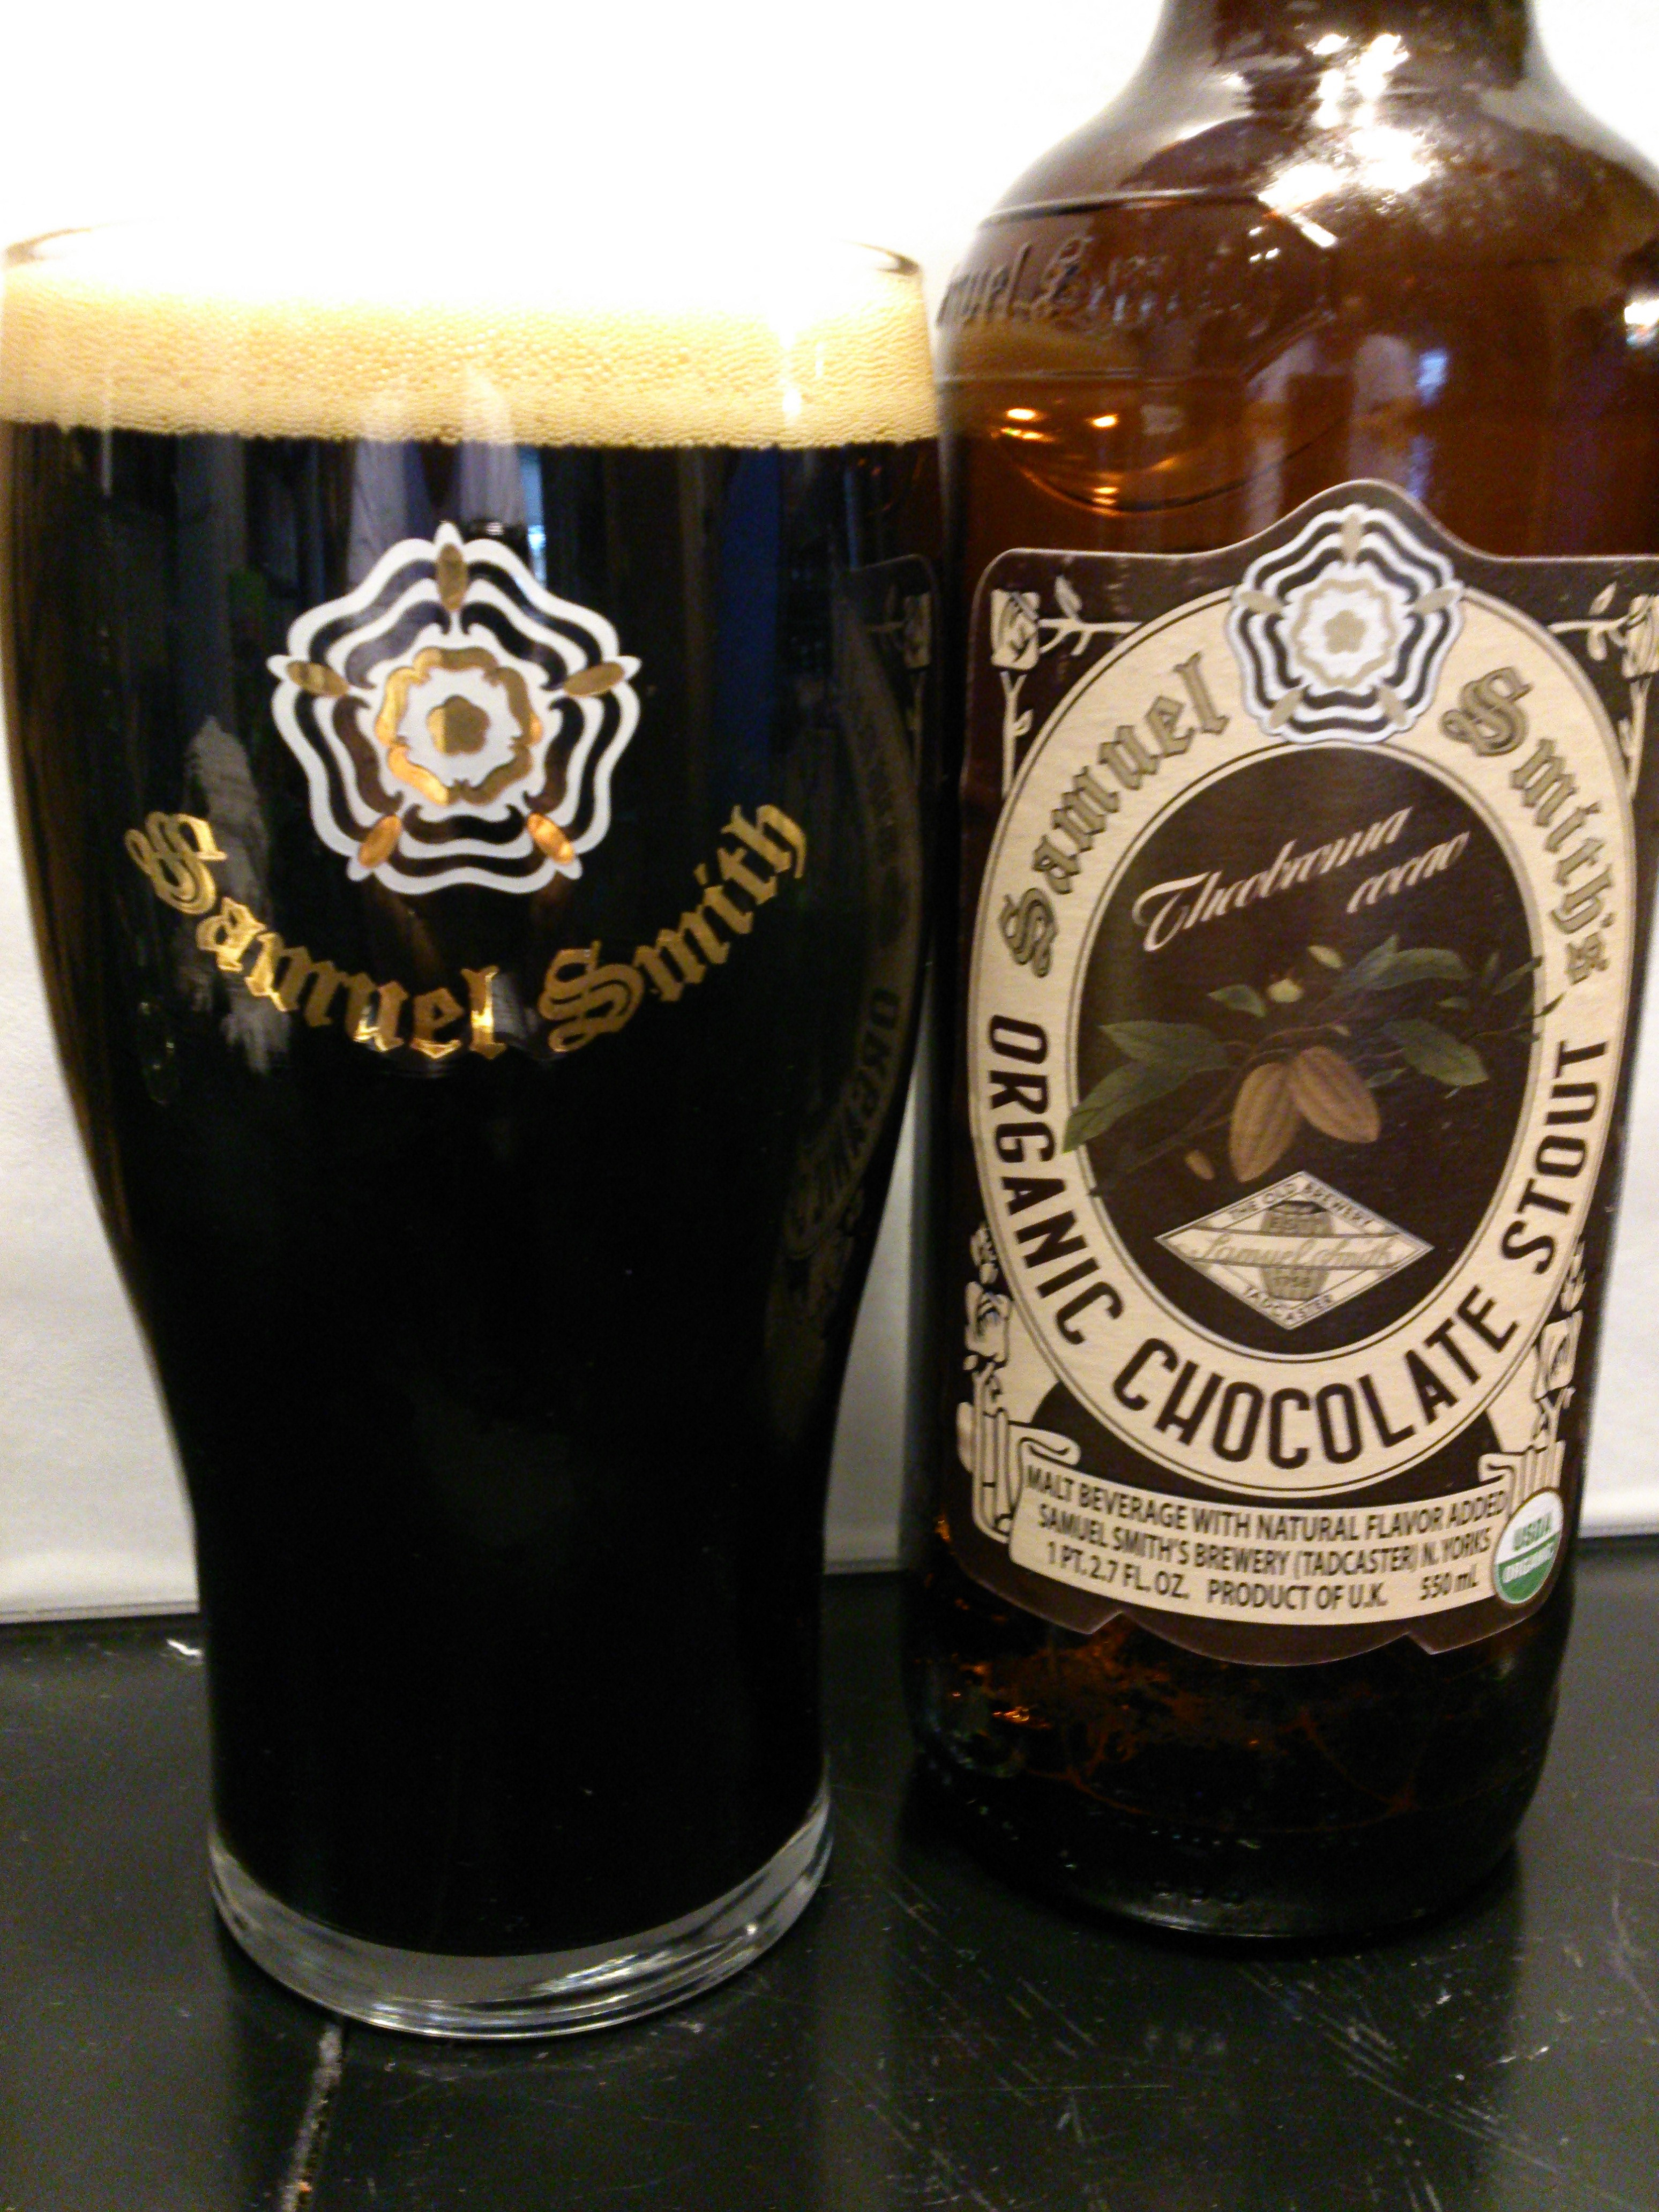 Samuel Smith's Organic Chocolate Stout | Toby's Beer Reviews